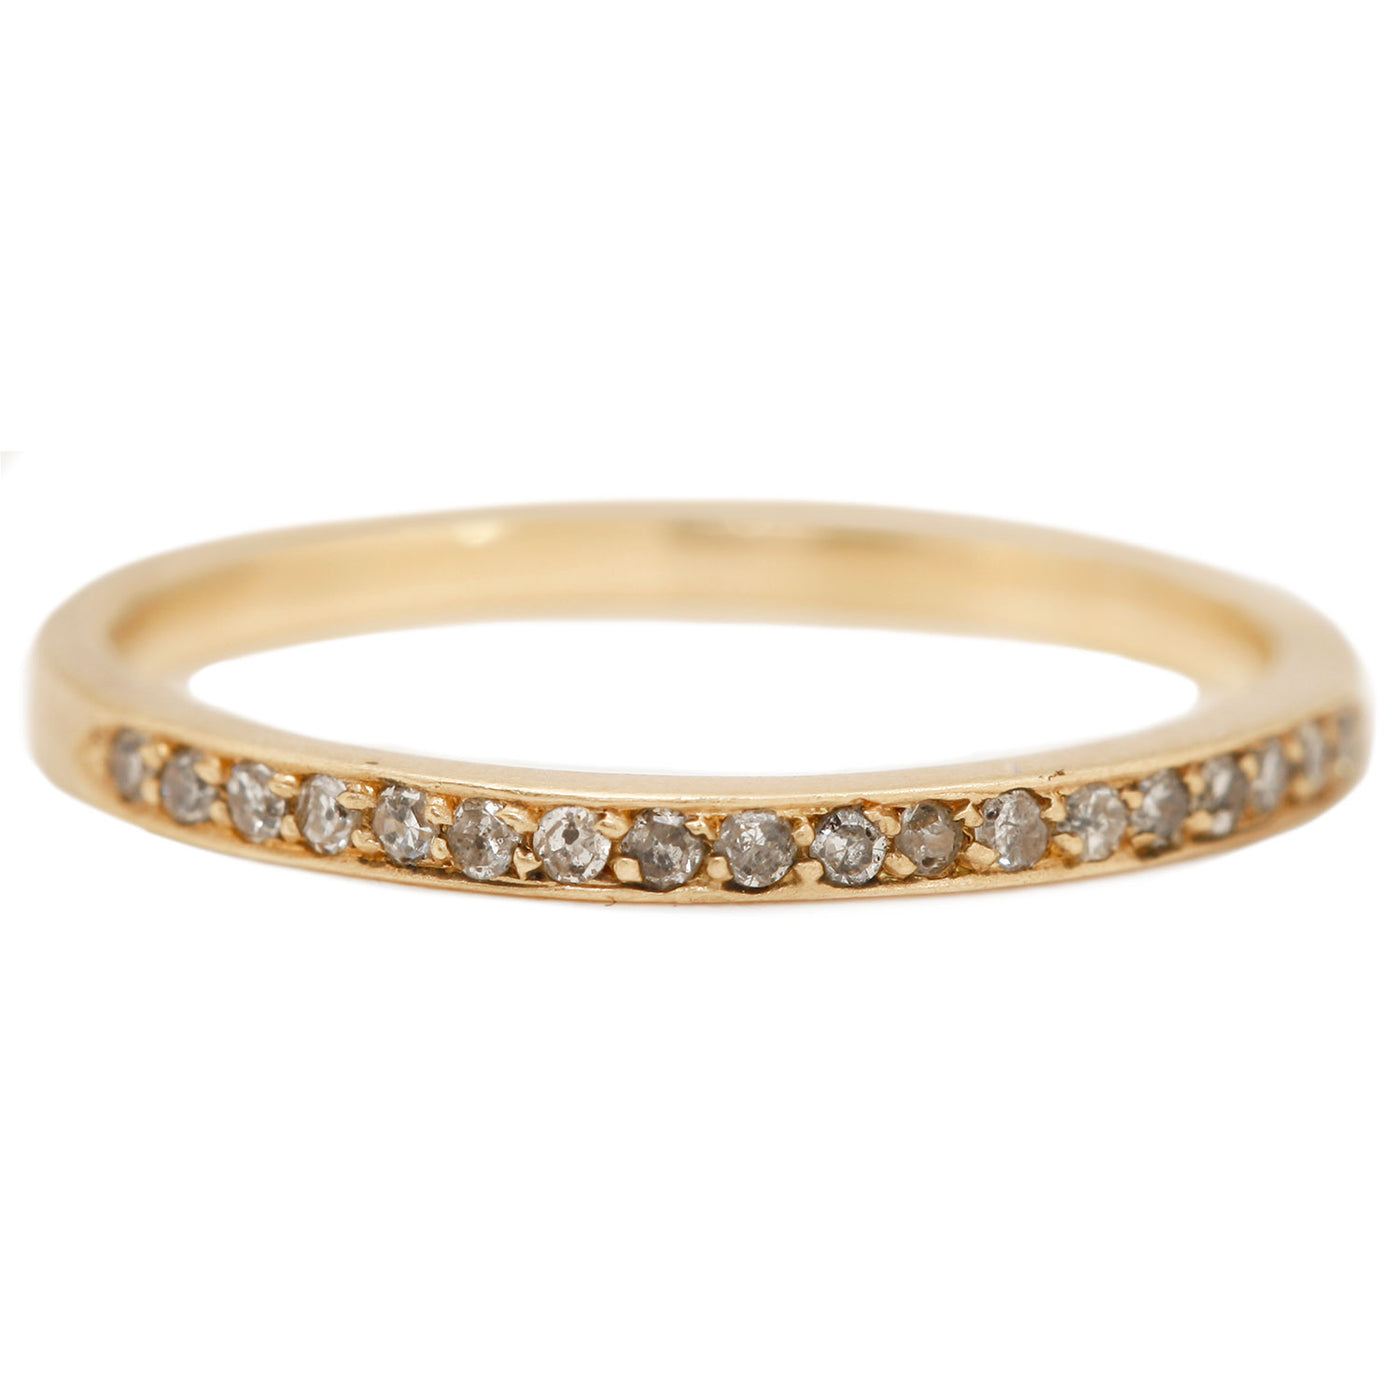 Rebecca Overmann Fancy Pave Half Eternity Band yellow gold